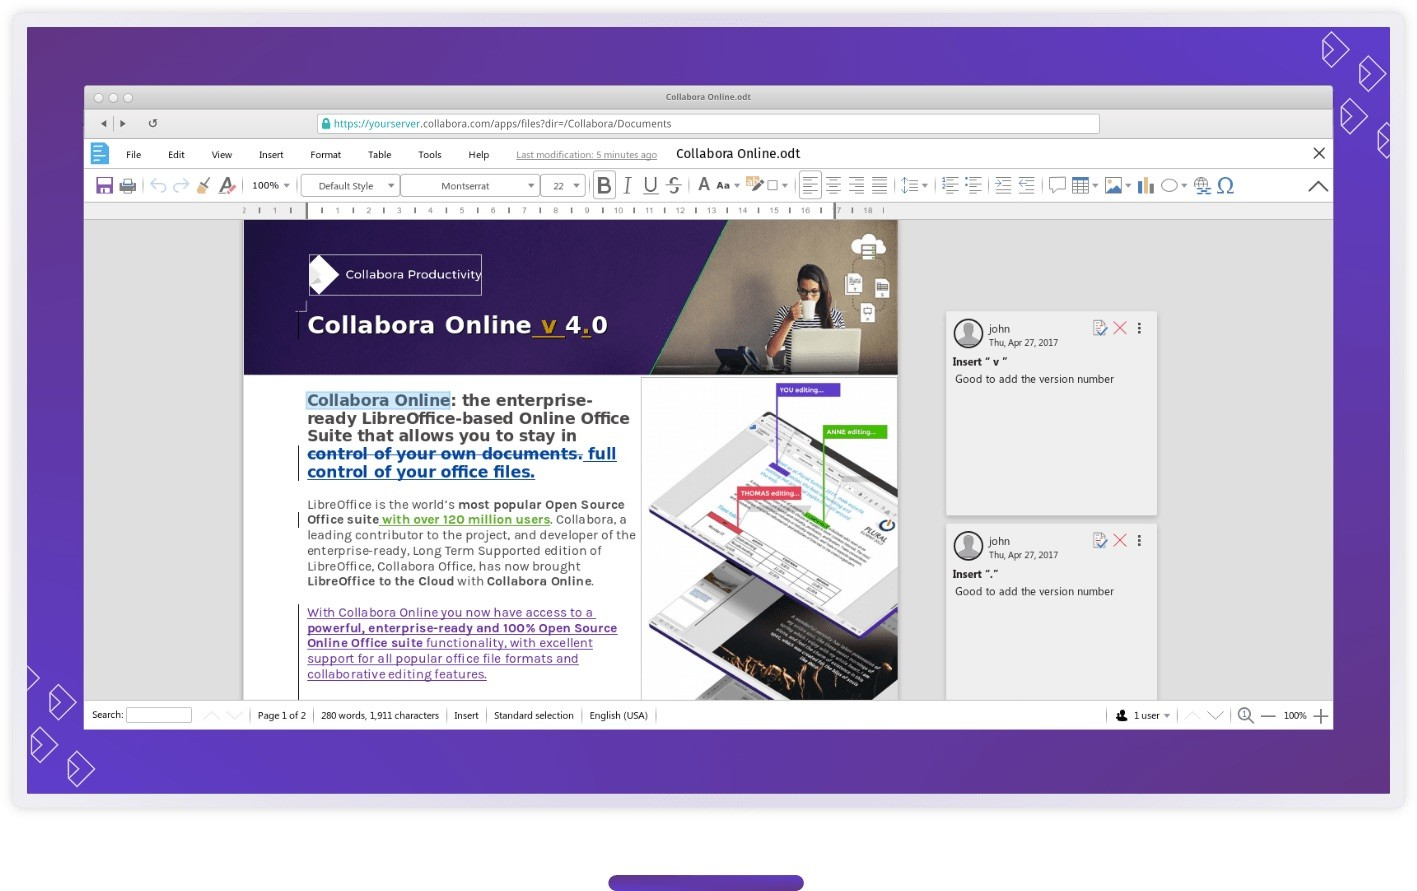 libreoffice-based-collabora-online-4-0-adds-new-look-numerous-improvements-525001-4.jpg